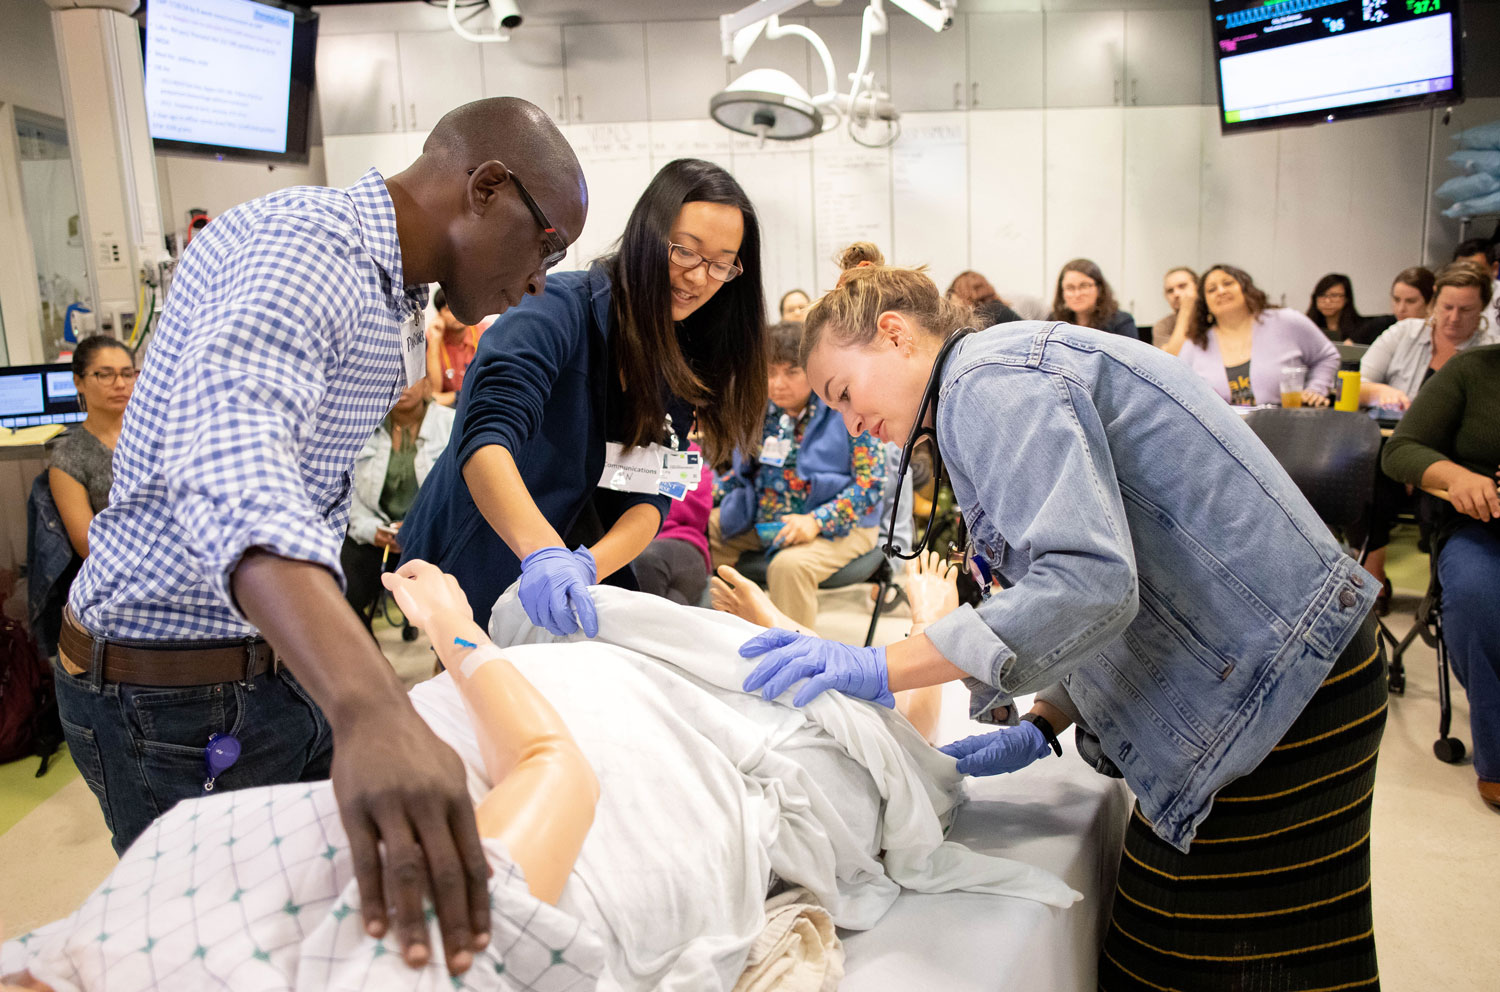 The UCSF School of Nursing's master's degree program and specialties were among the UCSF programs that placed highly in the latest U.S. News Best Grad School rankings. Nursing students, Emmanuel Onywera (left), Jennie Ling and Christina Camp (far right), learn how to care for an expectant mother using a simulation. Photo credit: Susan Merrell